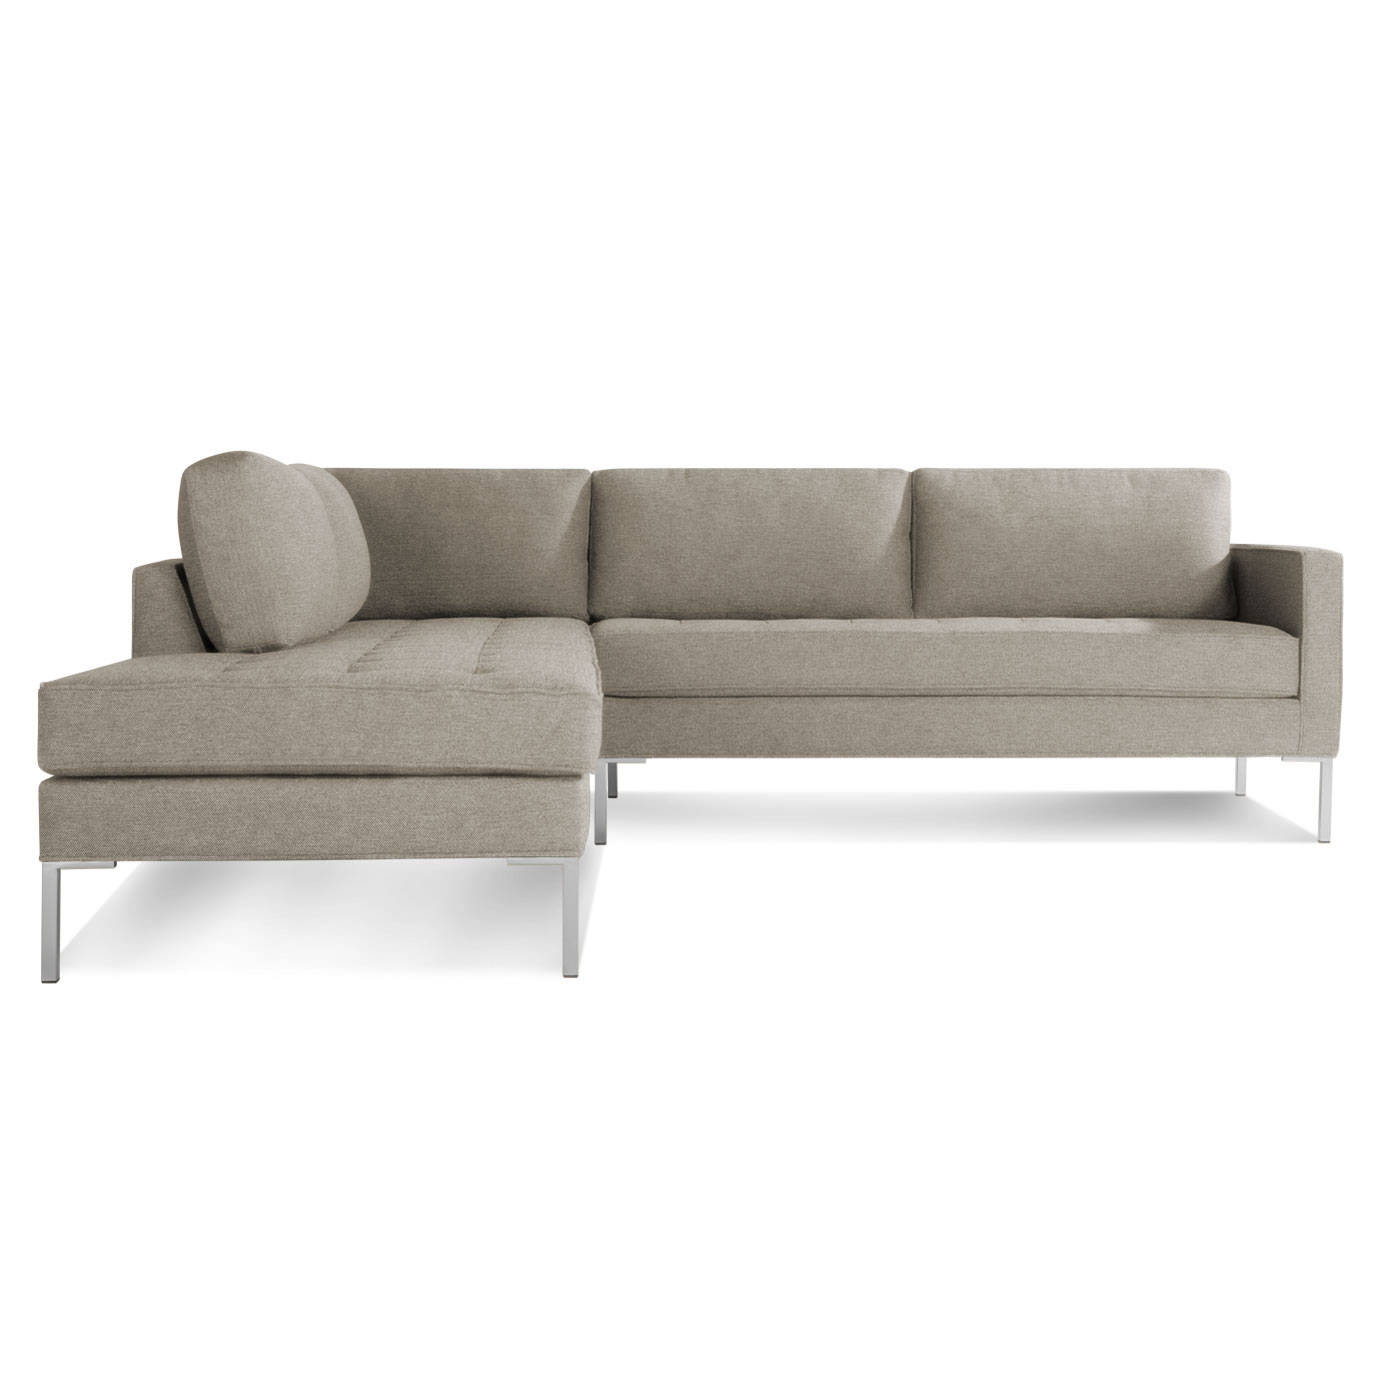 Target Sofa Covers | Oversized Chair Slipcover | L Shaped Couch Covers